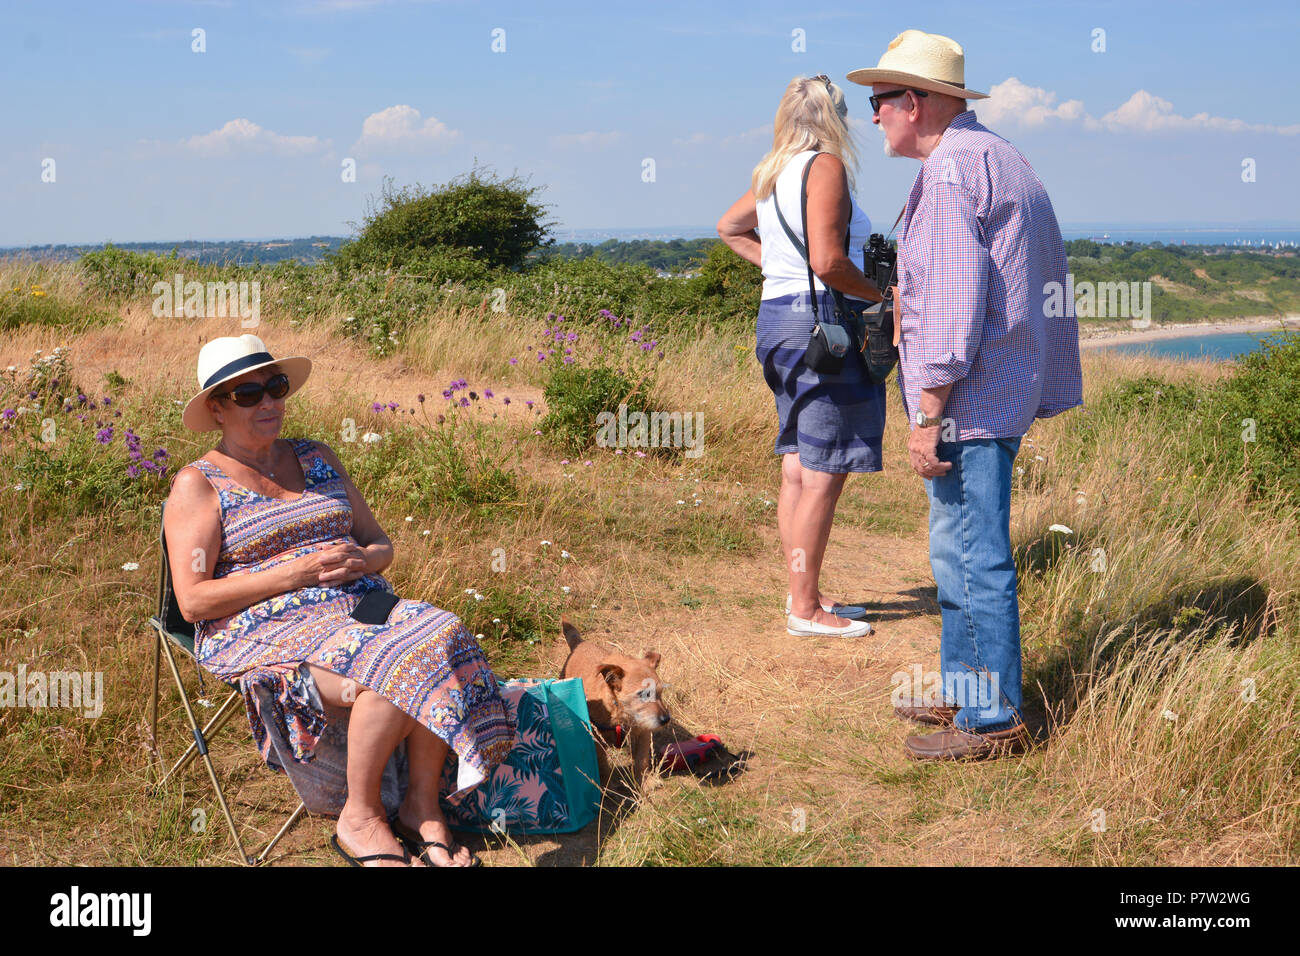 Culver Down, UK. 07th July, 2018. Tourists and locals gather on the top of Culver Down on the Isle of Wight, UK, to watch the 'Round The Island Yacht Race' 2018. Credit: Matthew Blythe/Alamy Live News - Stock Image